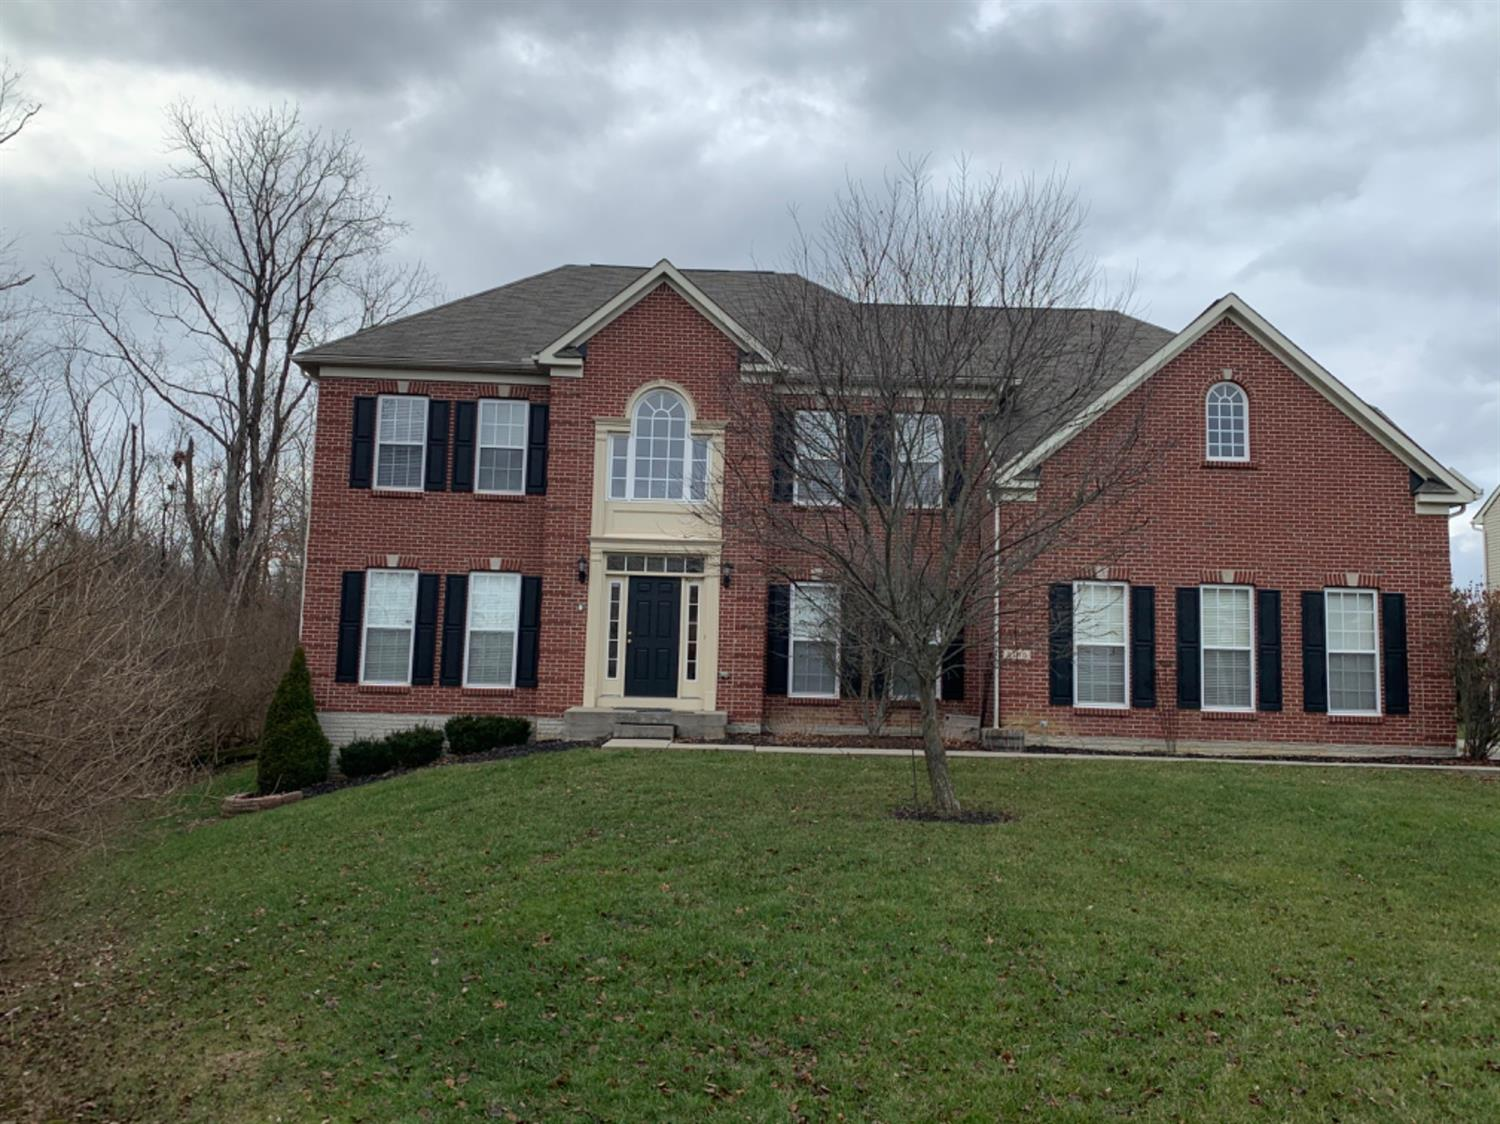 Property for sale at 5185 E View Drive, Union Twp,  Ohio 45150